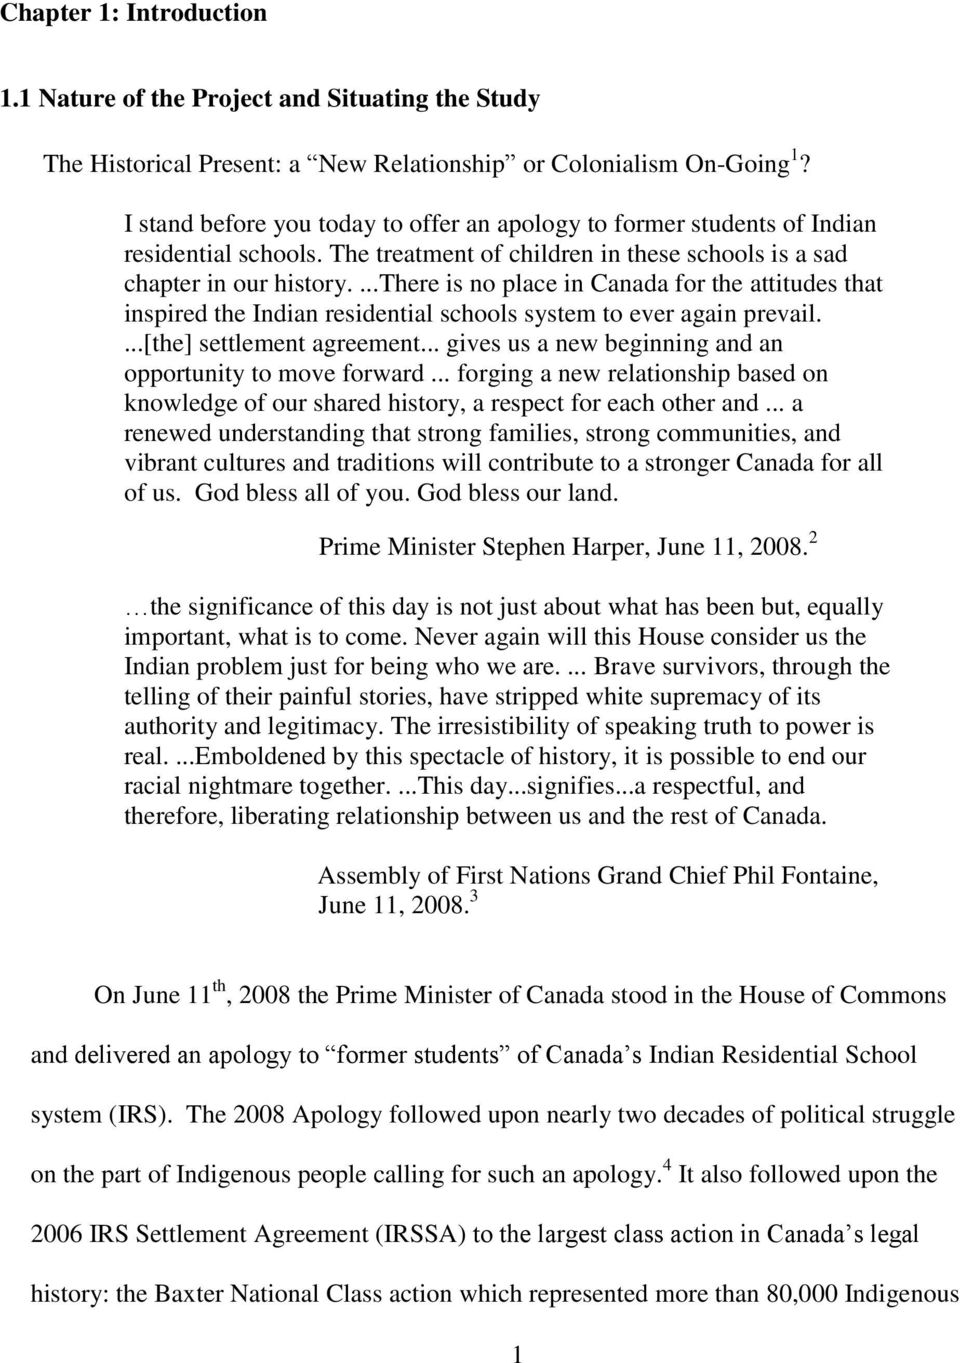 ...there is no place in Canada for the attitudes that inspired the Indian residential schools system to ever again prevail....[the] settlement agreement.